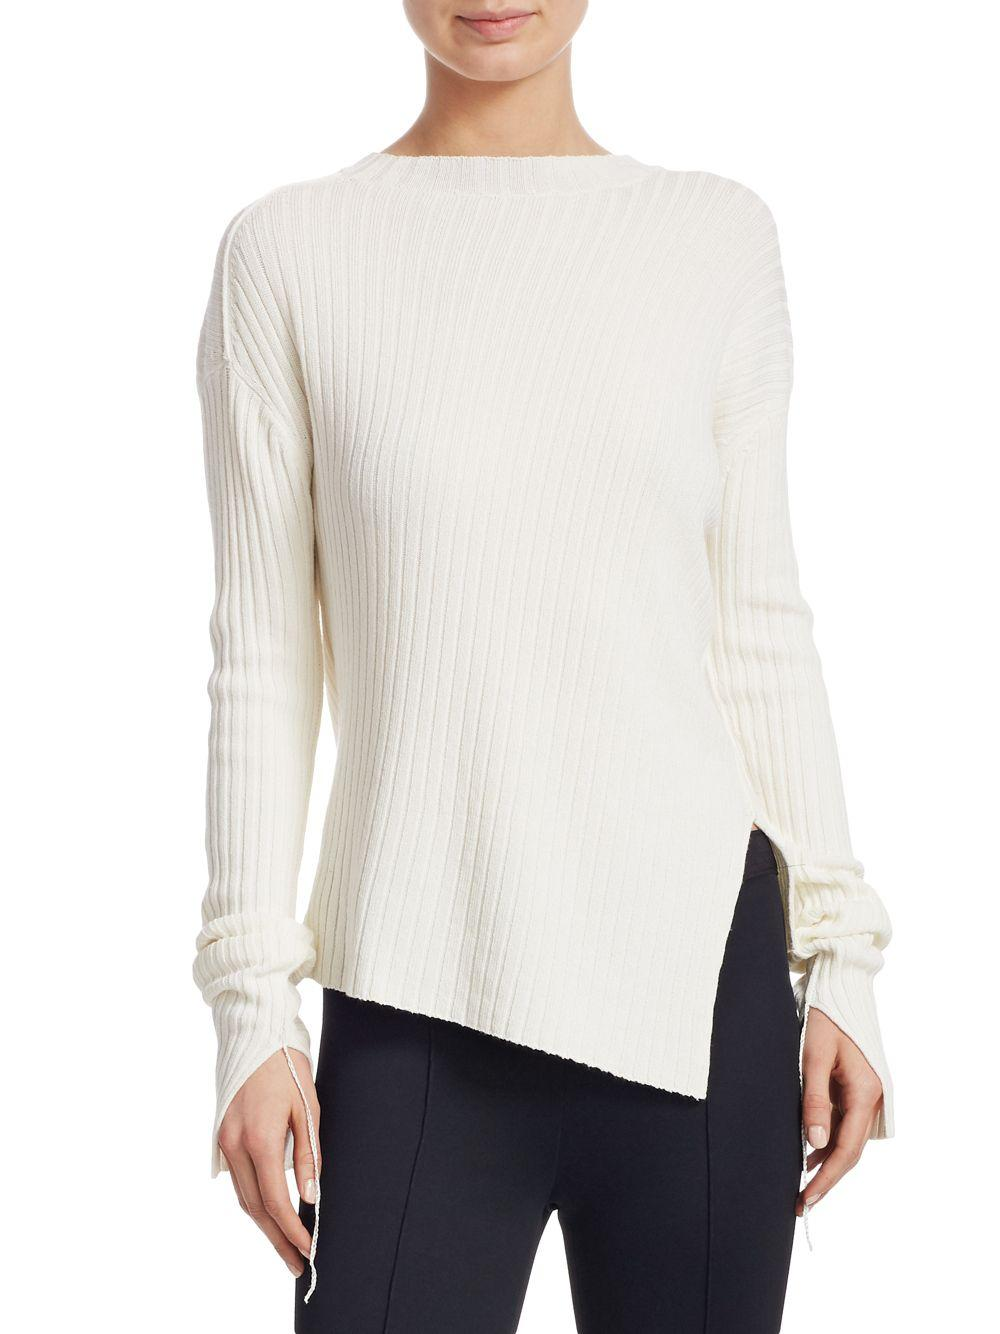 93a2a87475347b Lyst - Helmut Lang Twisted Crewneck Sweater in White - Save 1%